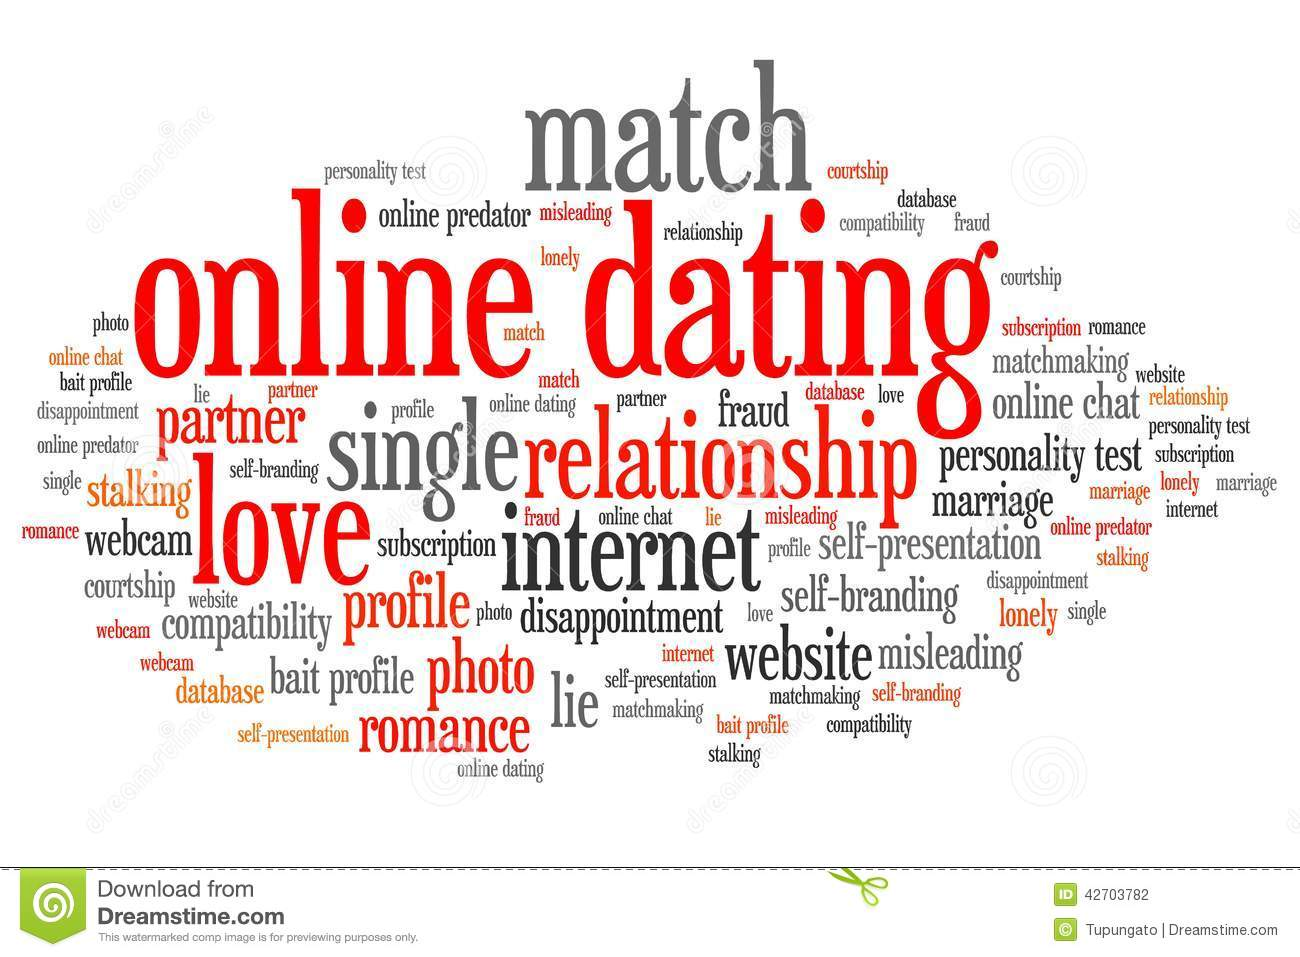 psychology on online dating Psychology itself is under scrutiny:  this article has a misleading title, they only found a correlation between online dating and self esteem.